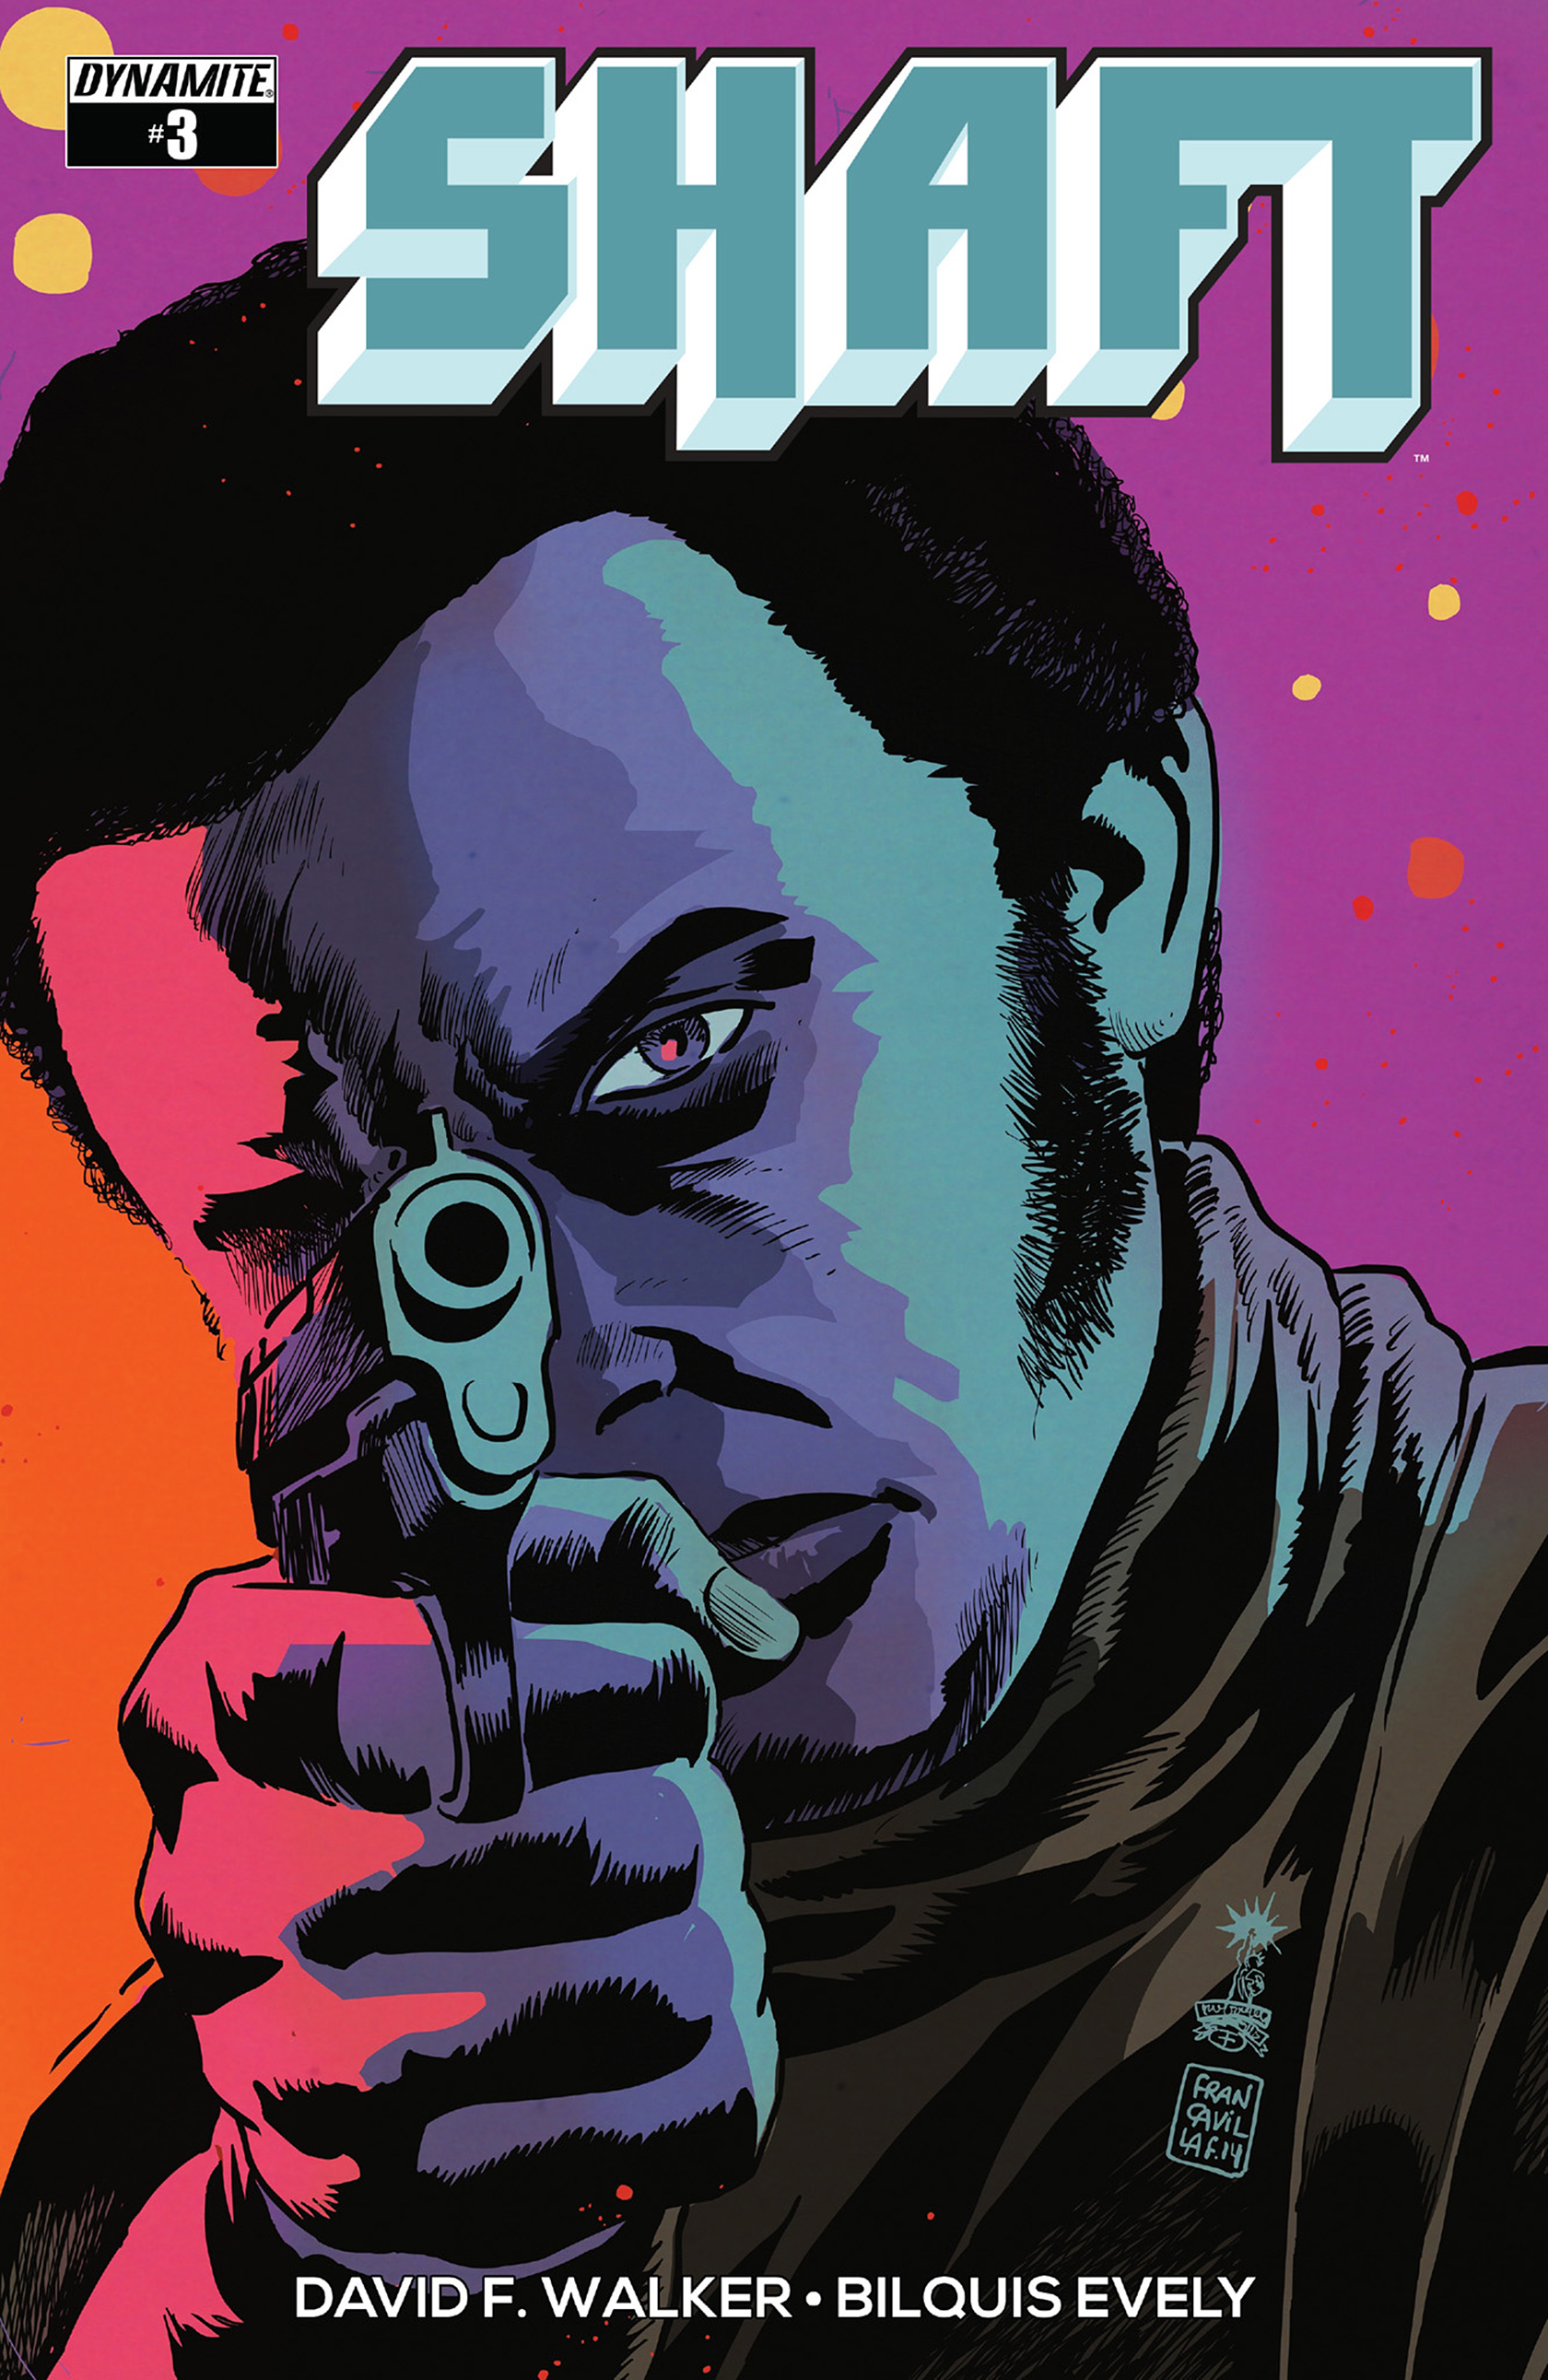 Read online Shaft comic -  Issue #3 - 2